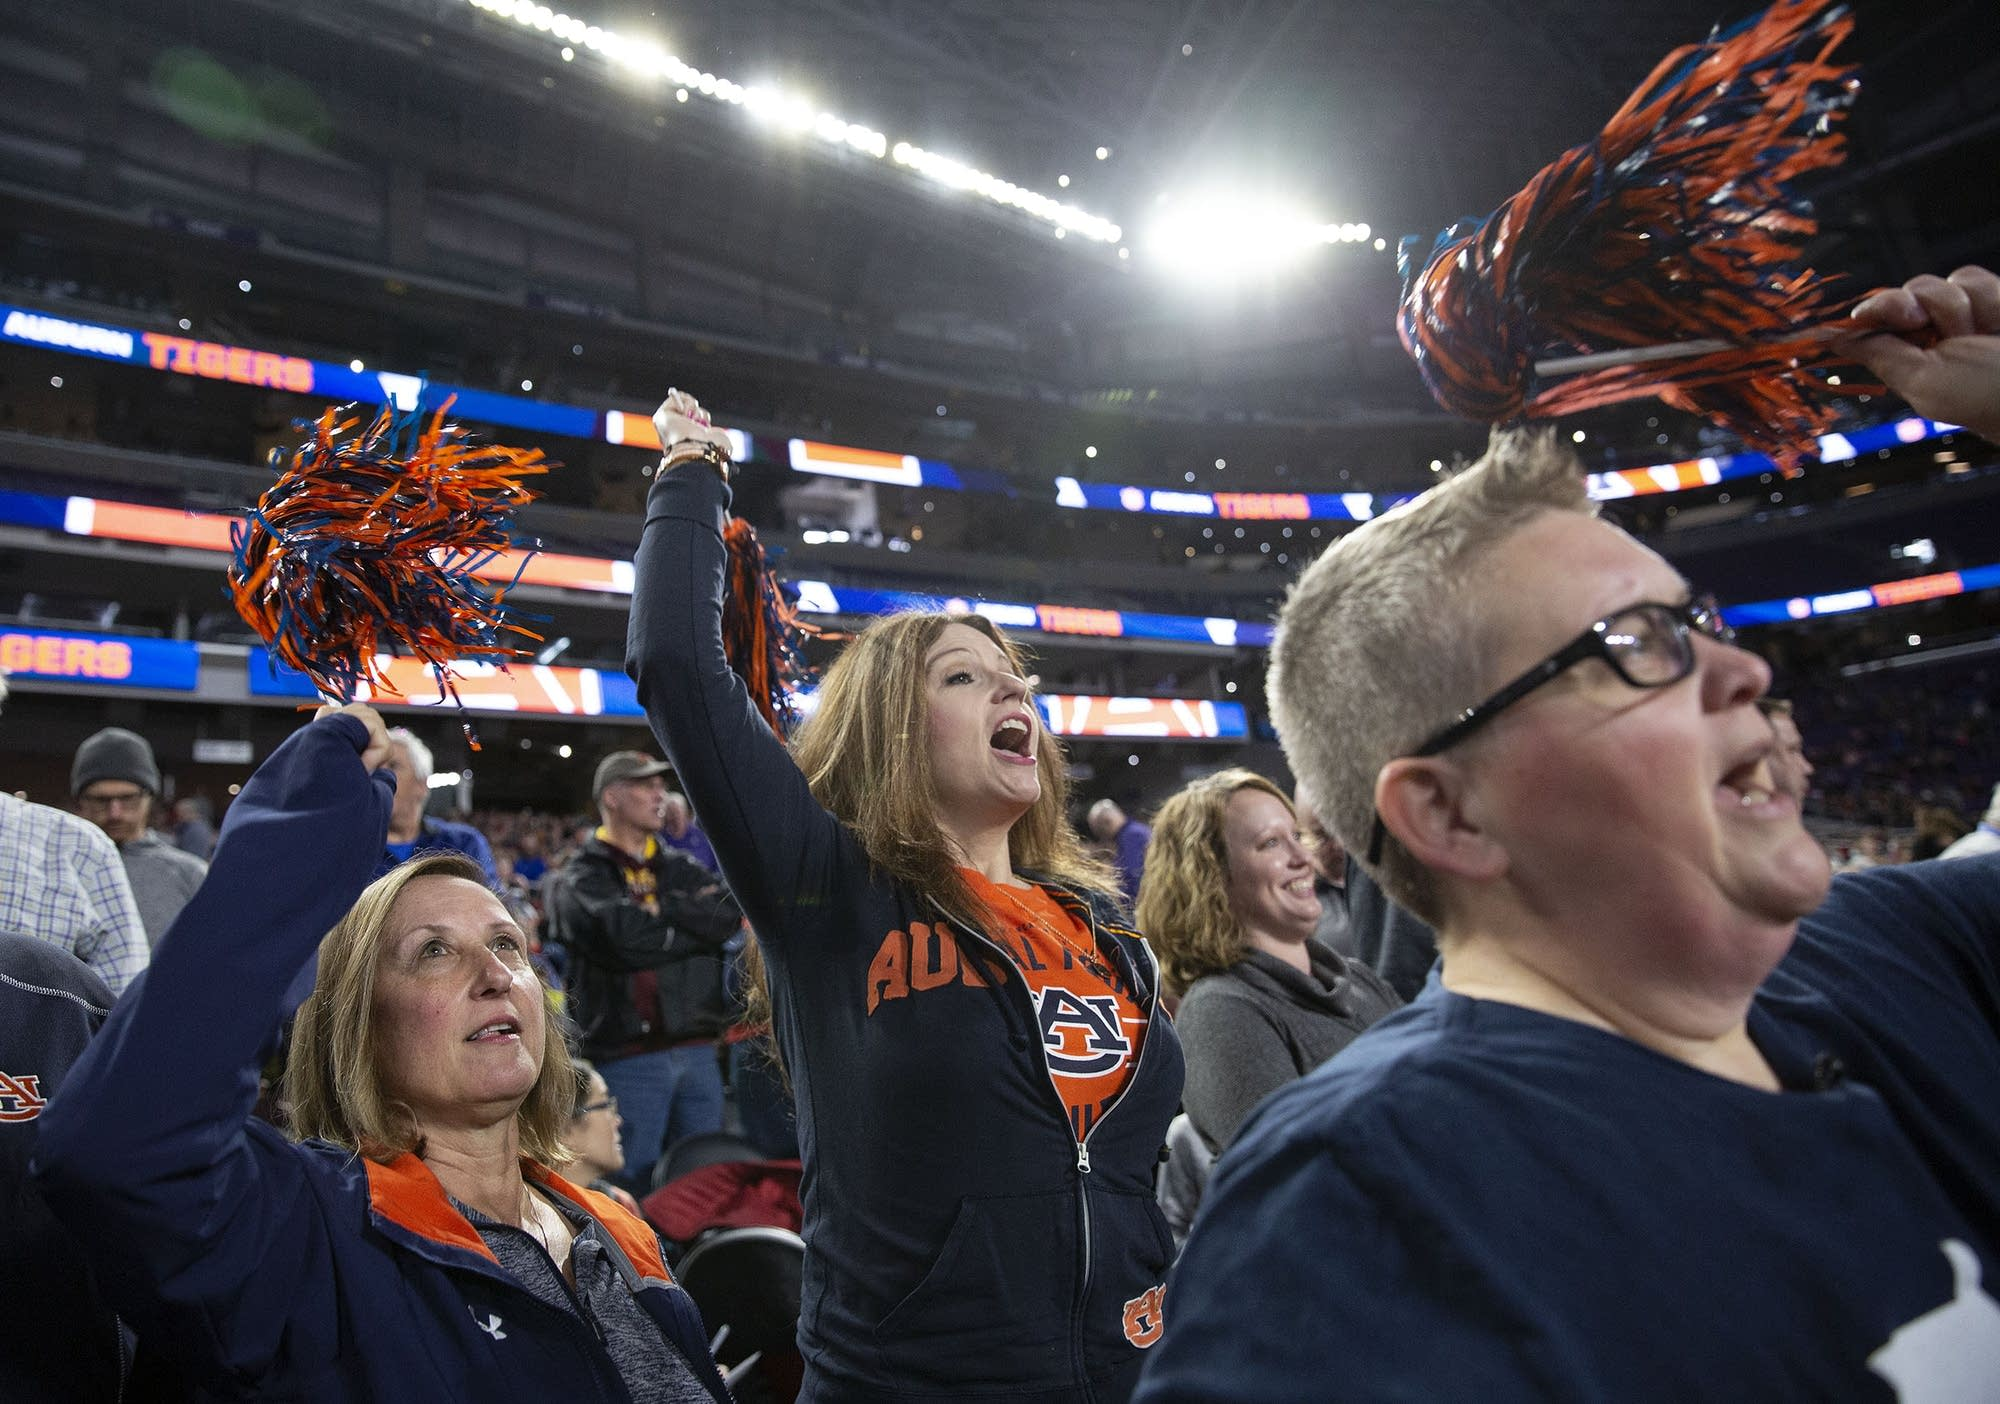 Bobbi Hoebelheinrich, Autumn Toussaint and Chris Turner cheer for Auburn.